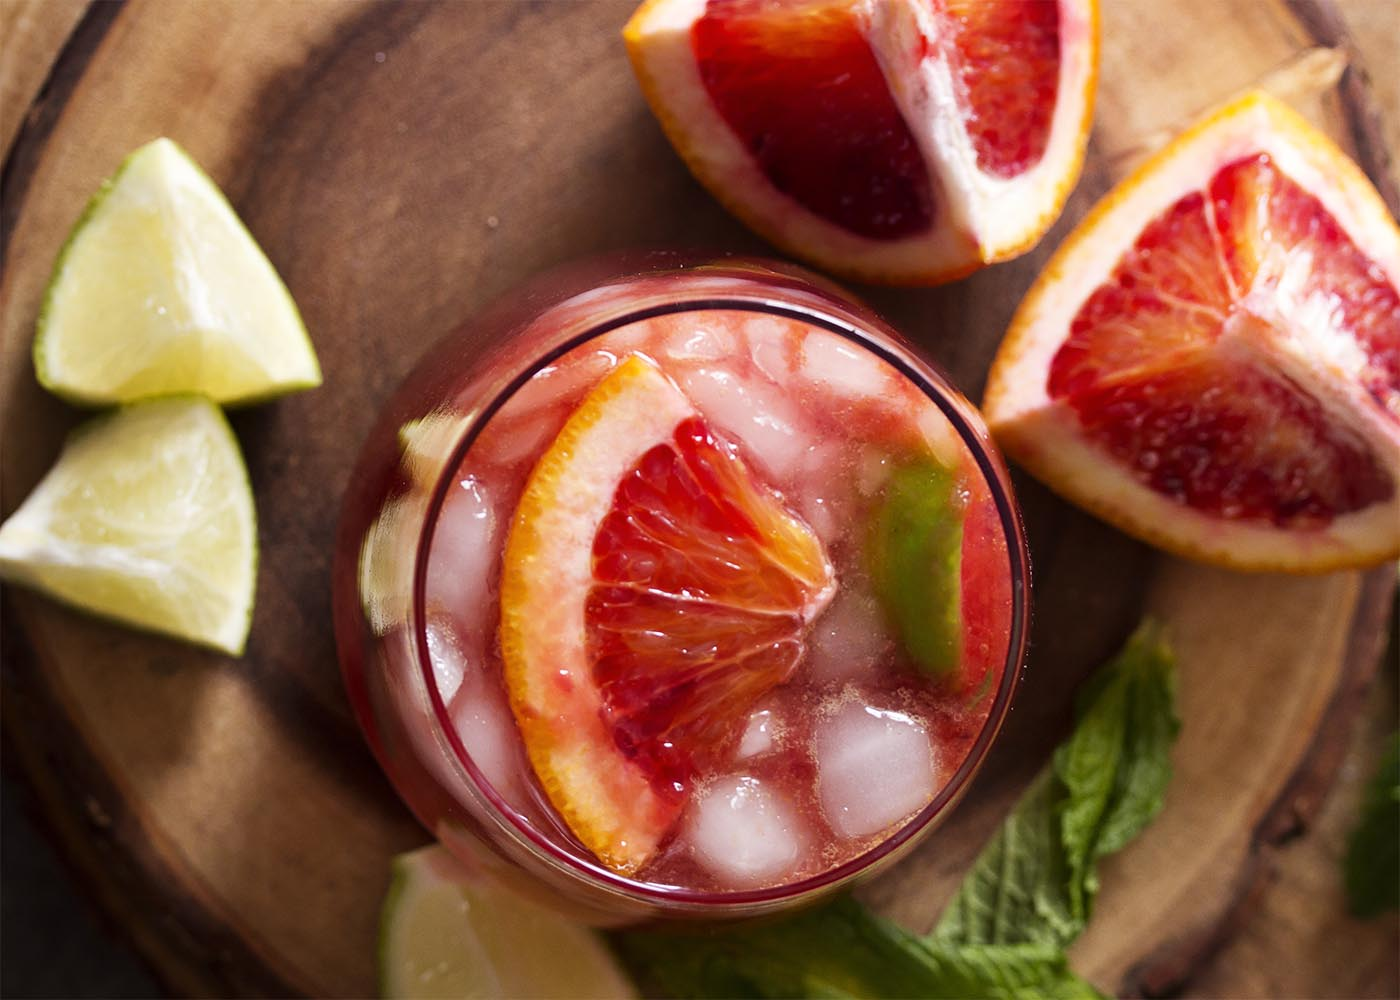 Top down view of a glass of moscow mule with blood orange slice arranged on top.